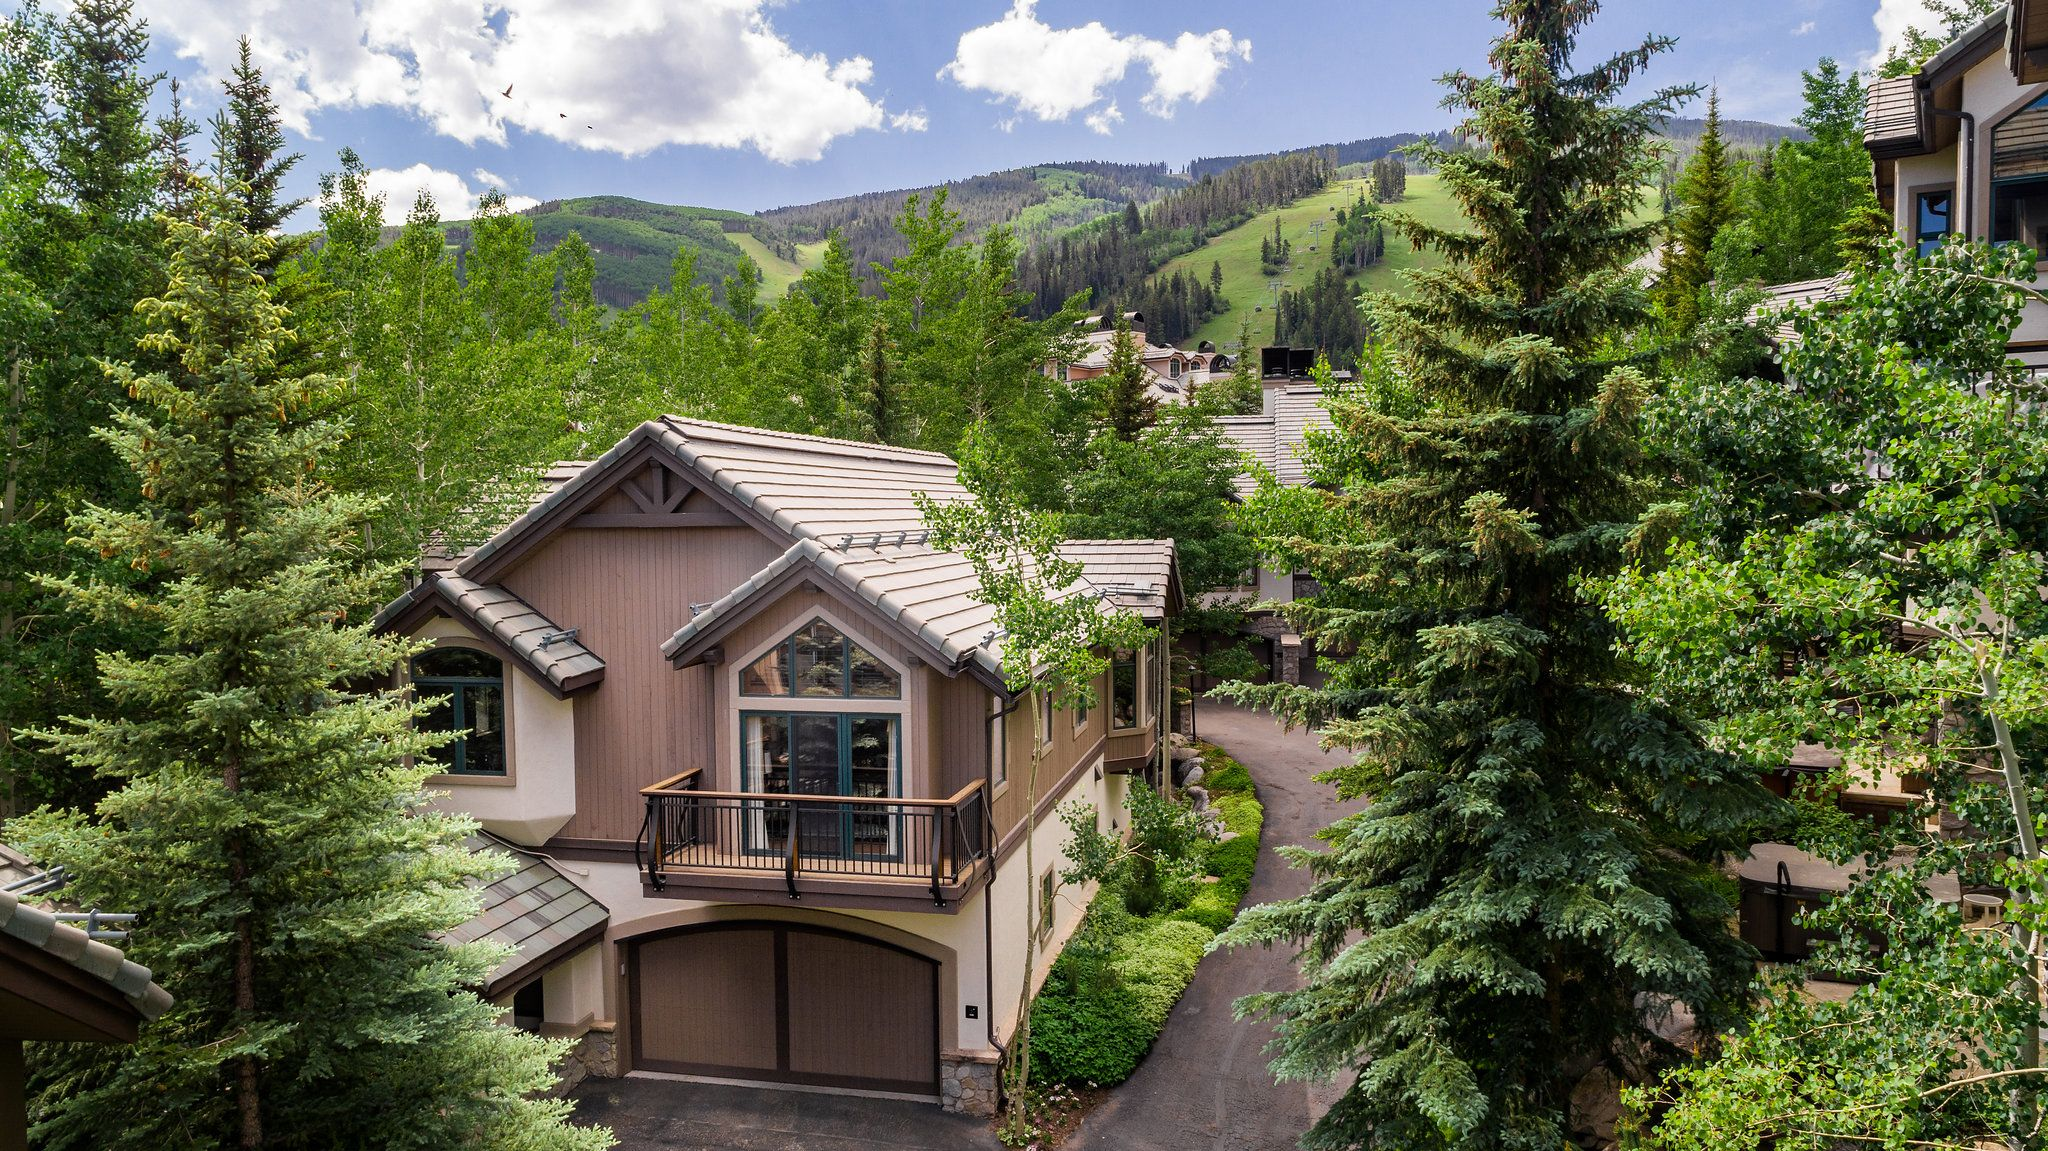 19 Larkspur Lane Beaver Creek, CO 81623